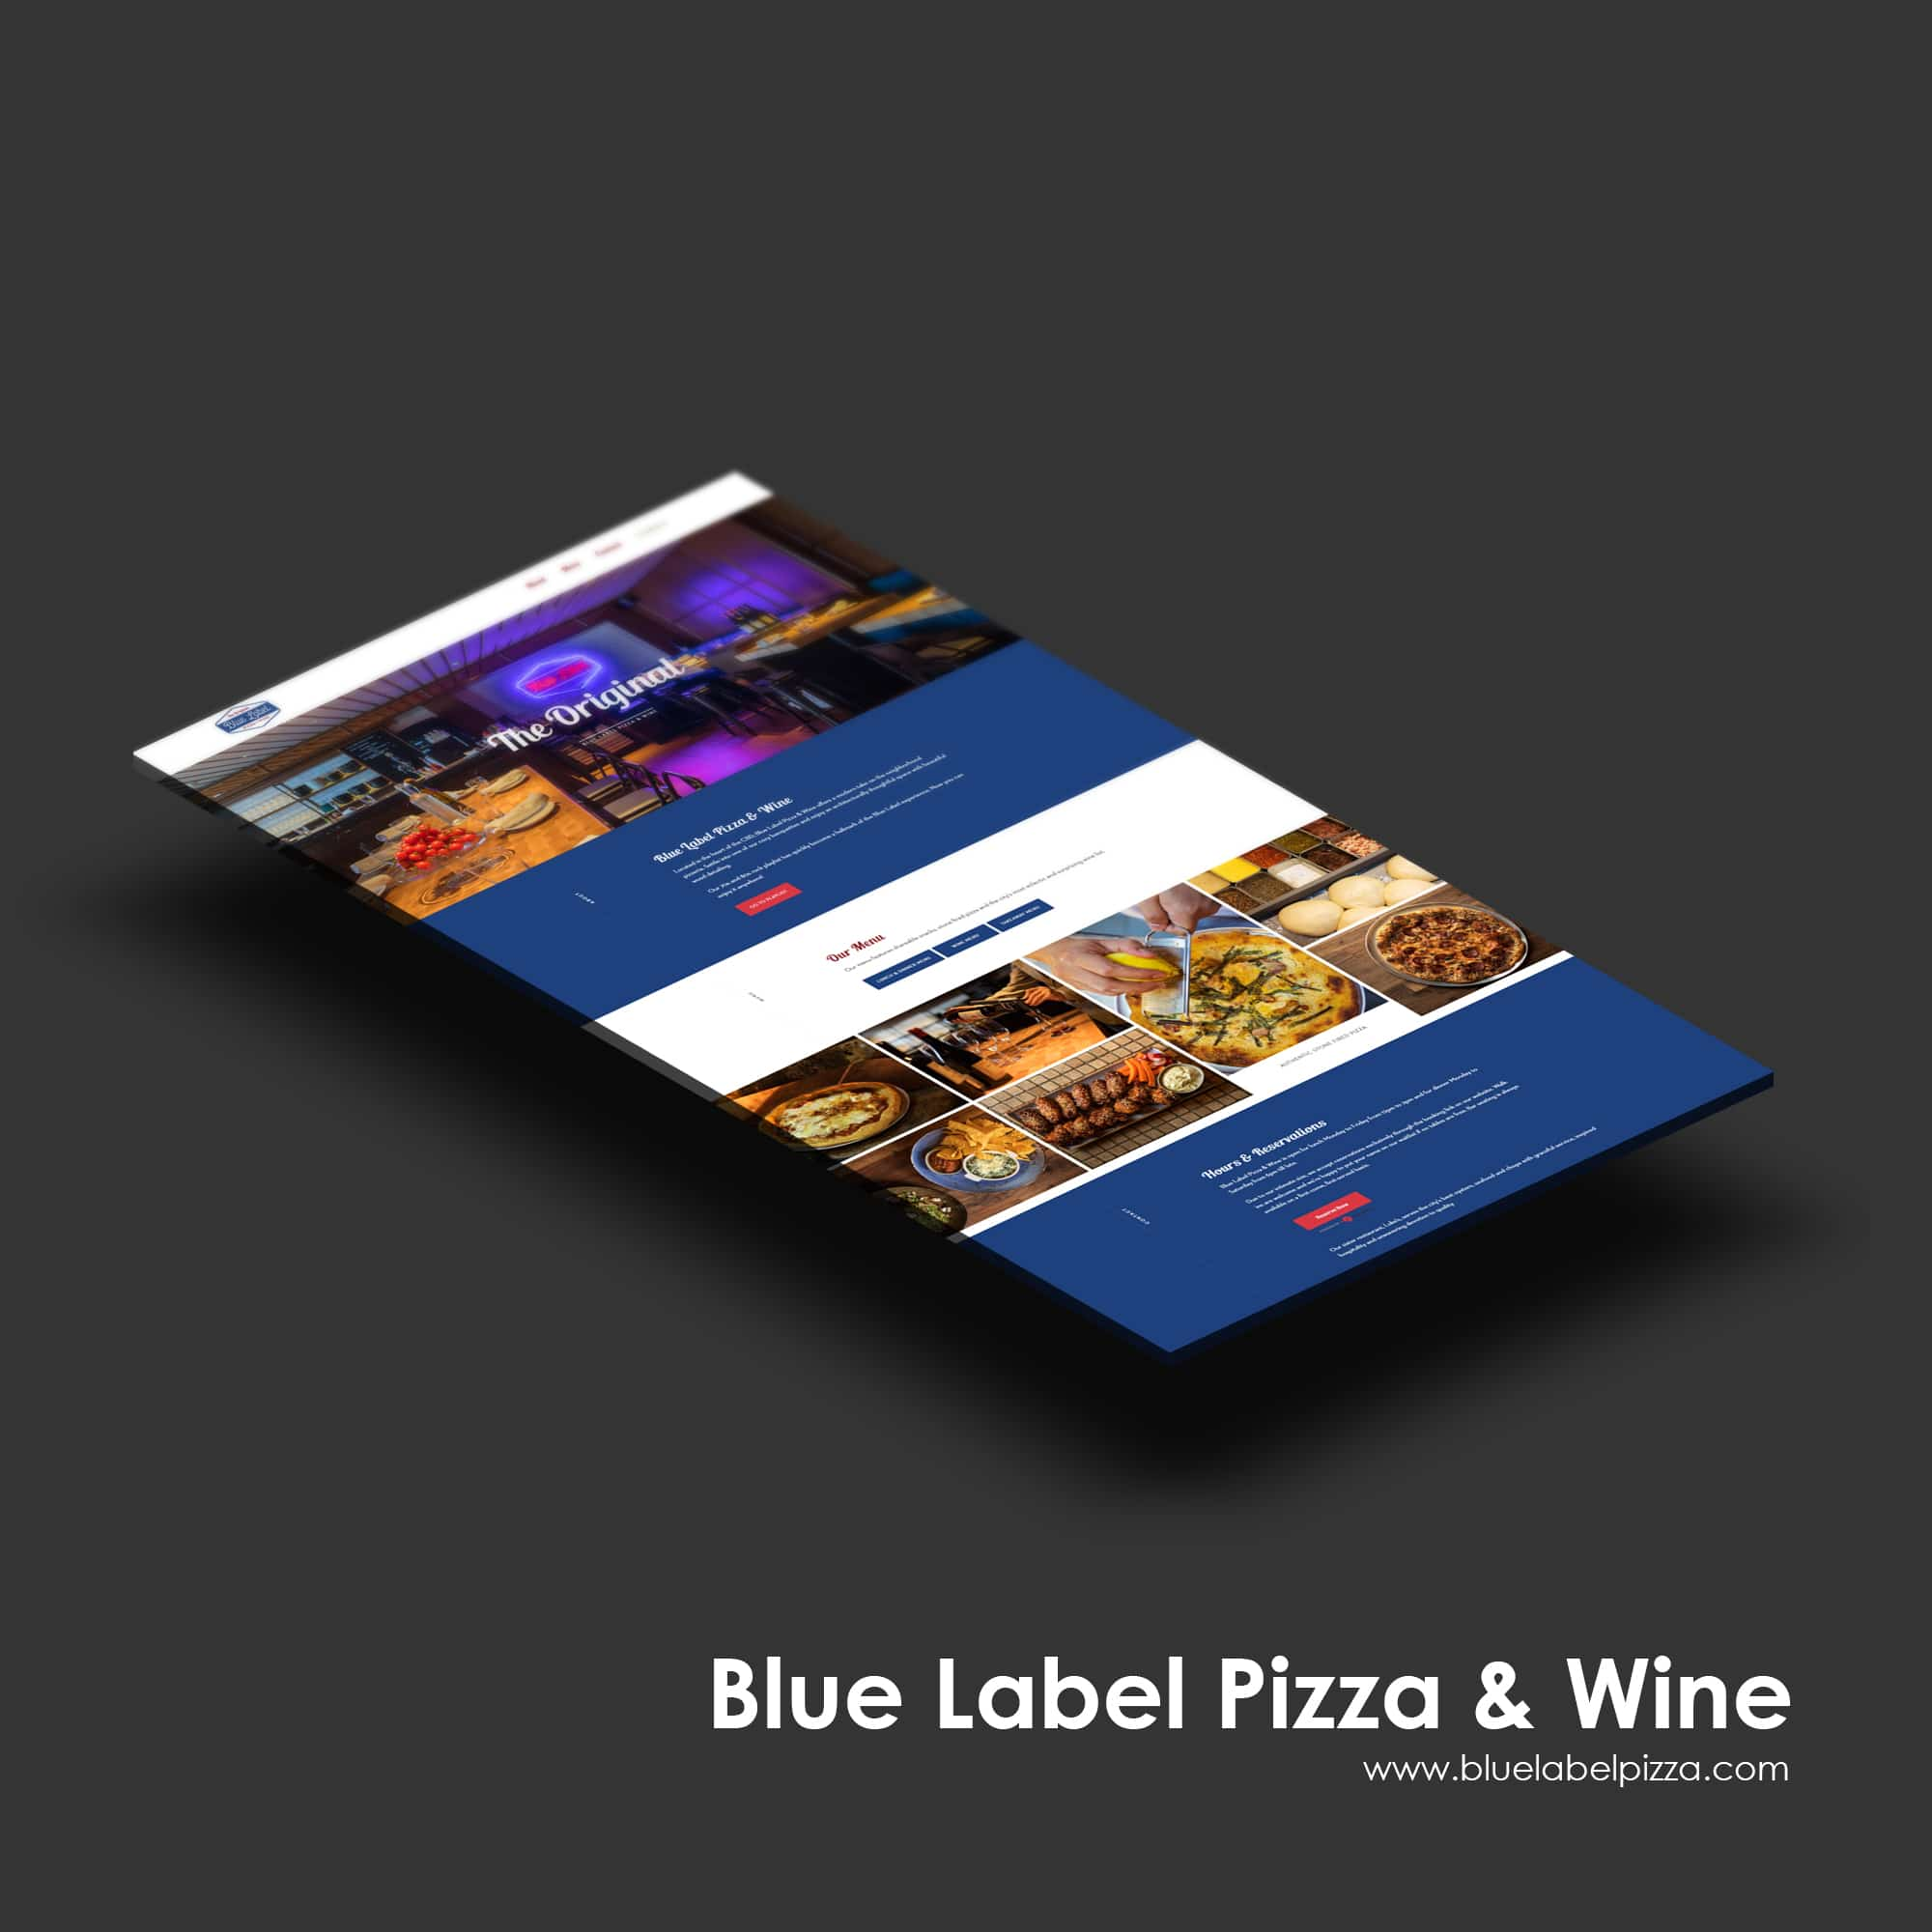 Singapore best web design blue label pizza & wine web design